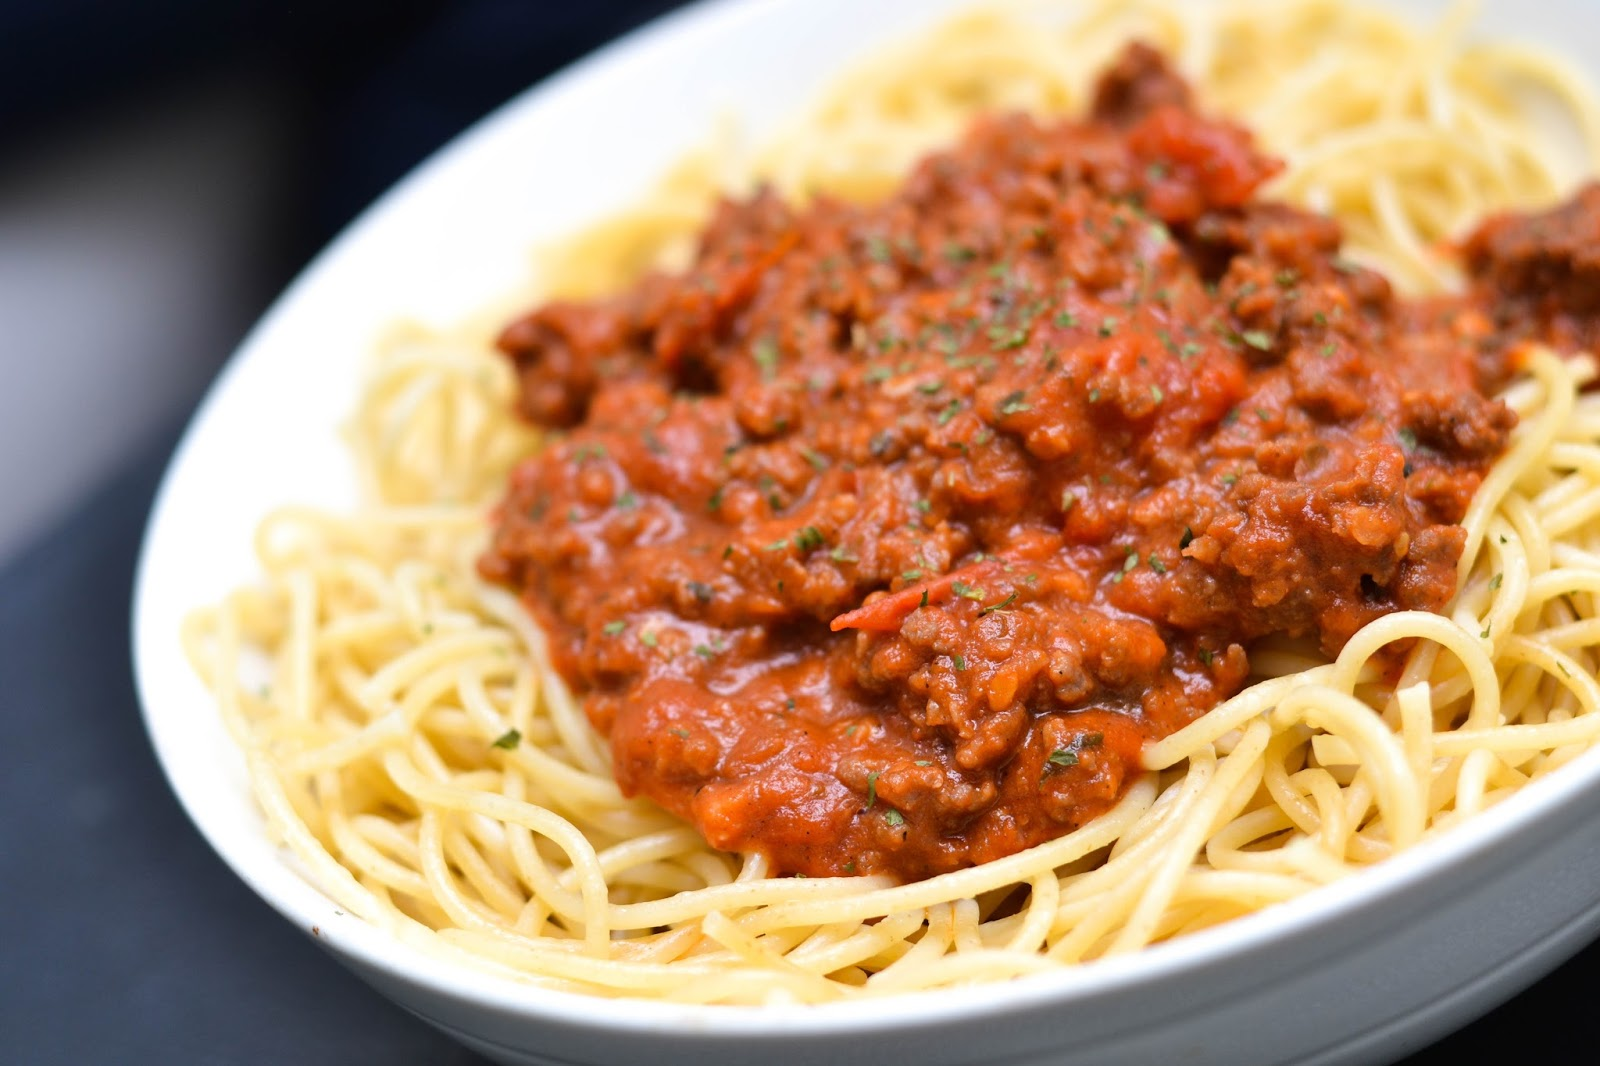 Side view of Spaghetti Bolognese